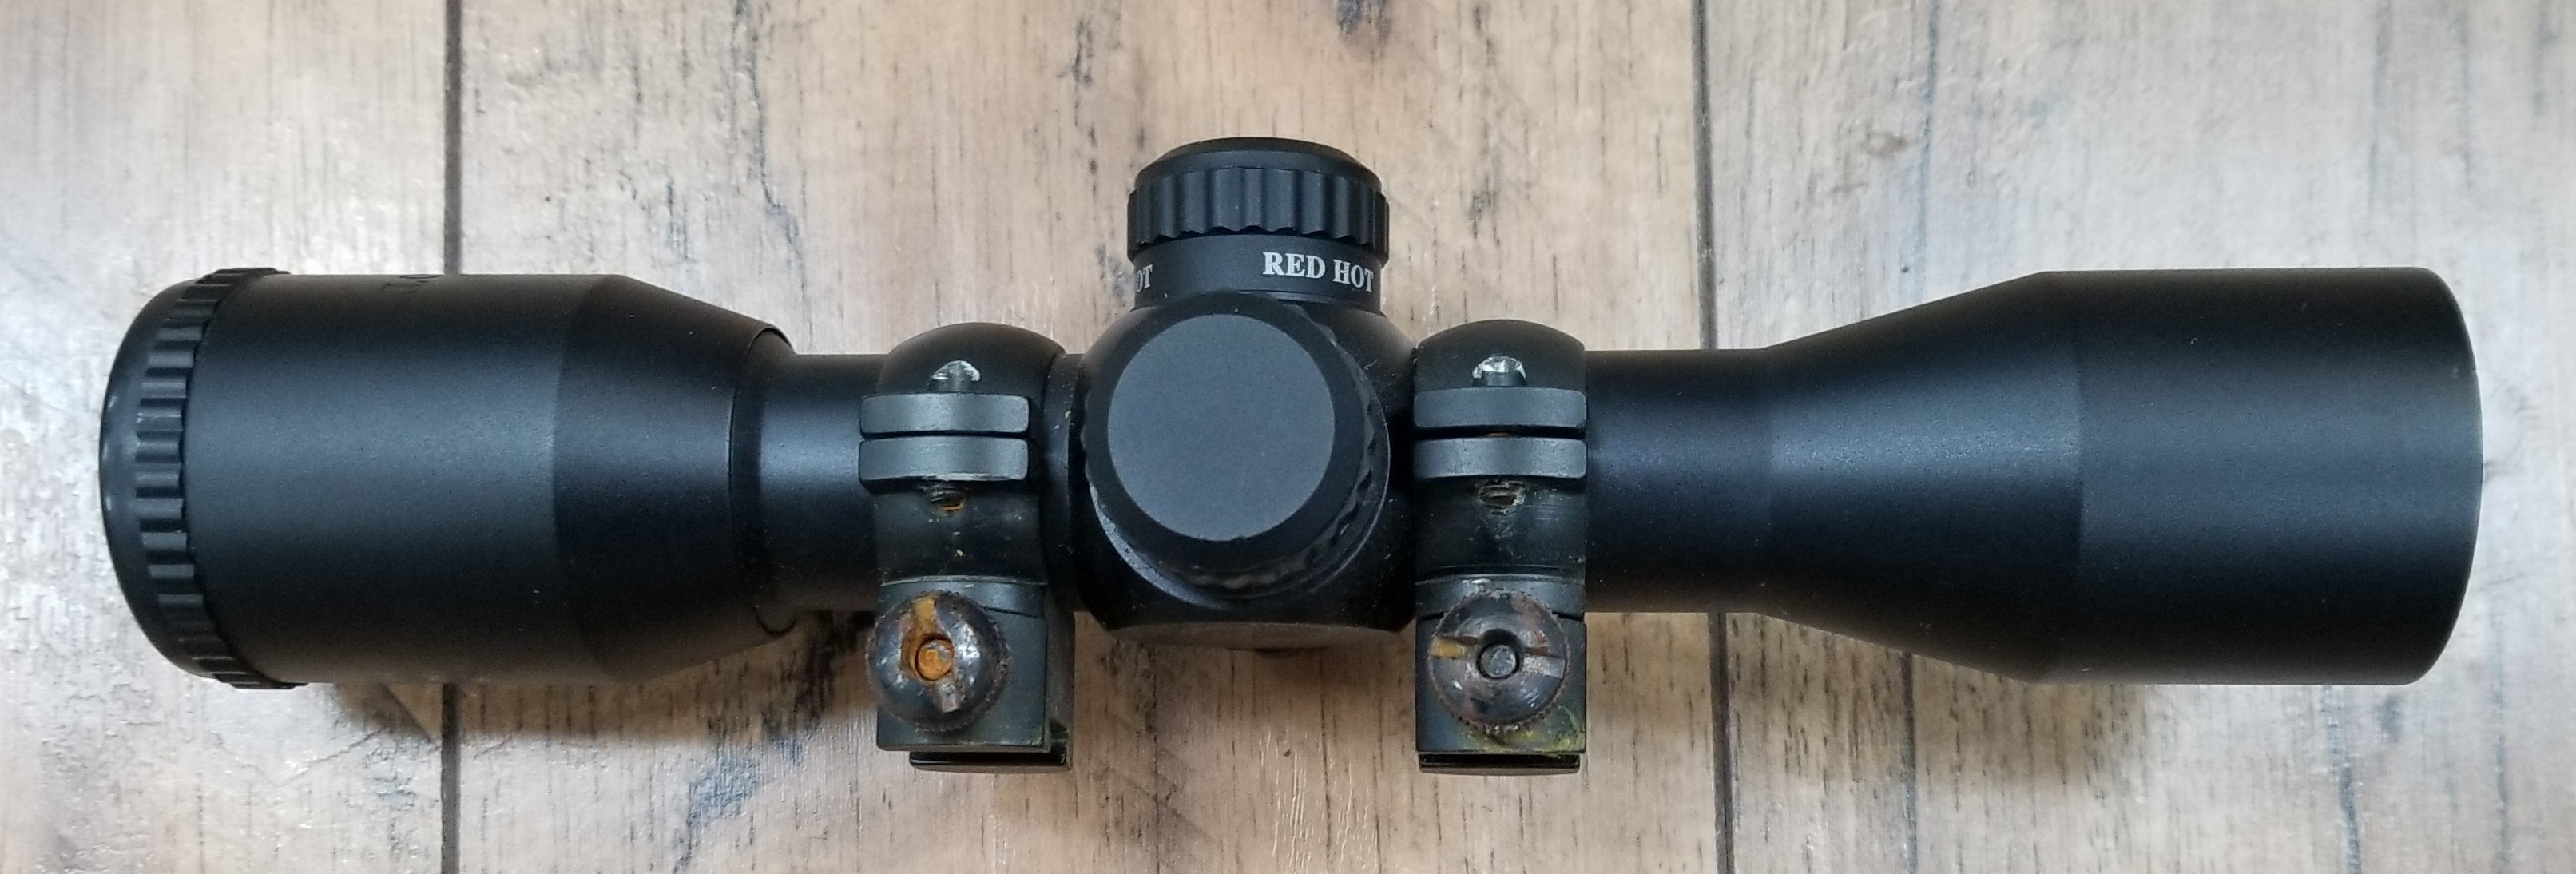 REDHOT -  - SCOPE HUNTING SUPPLIES